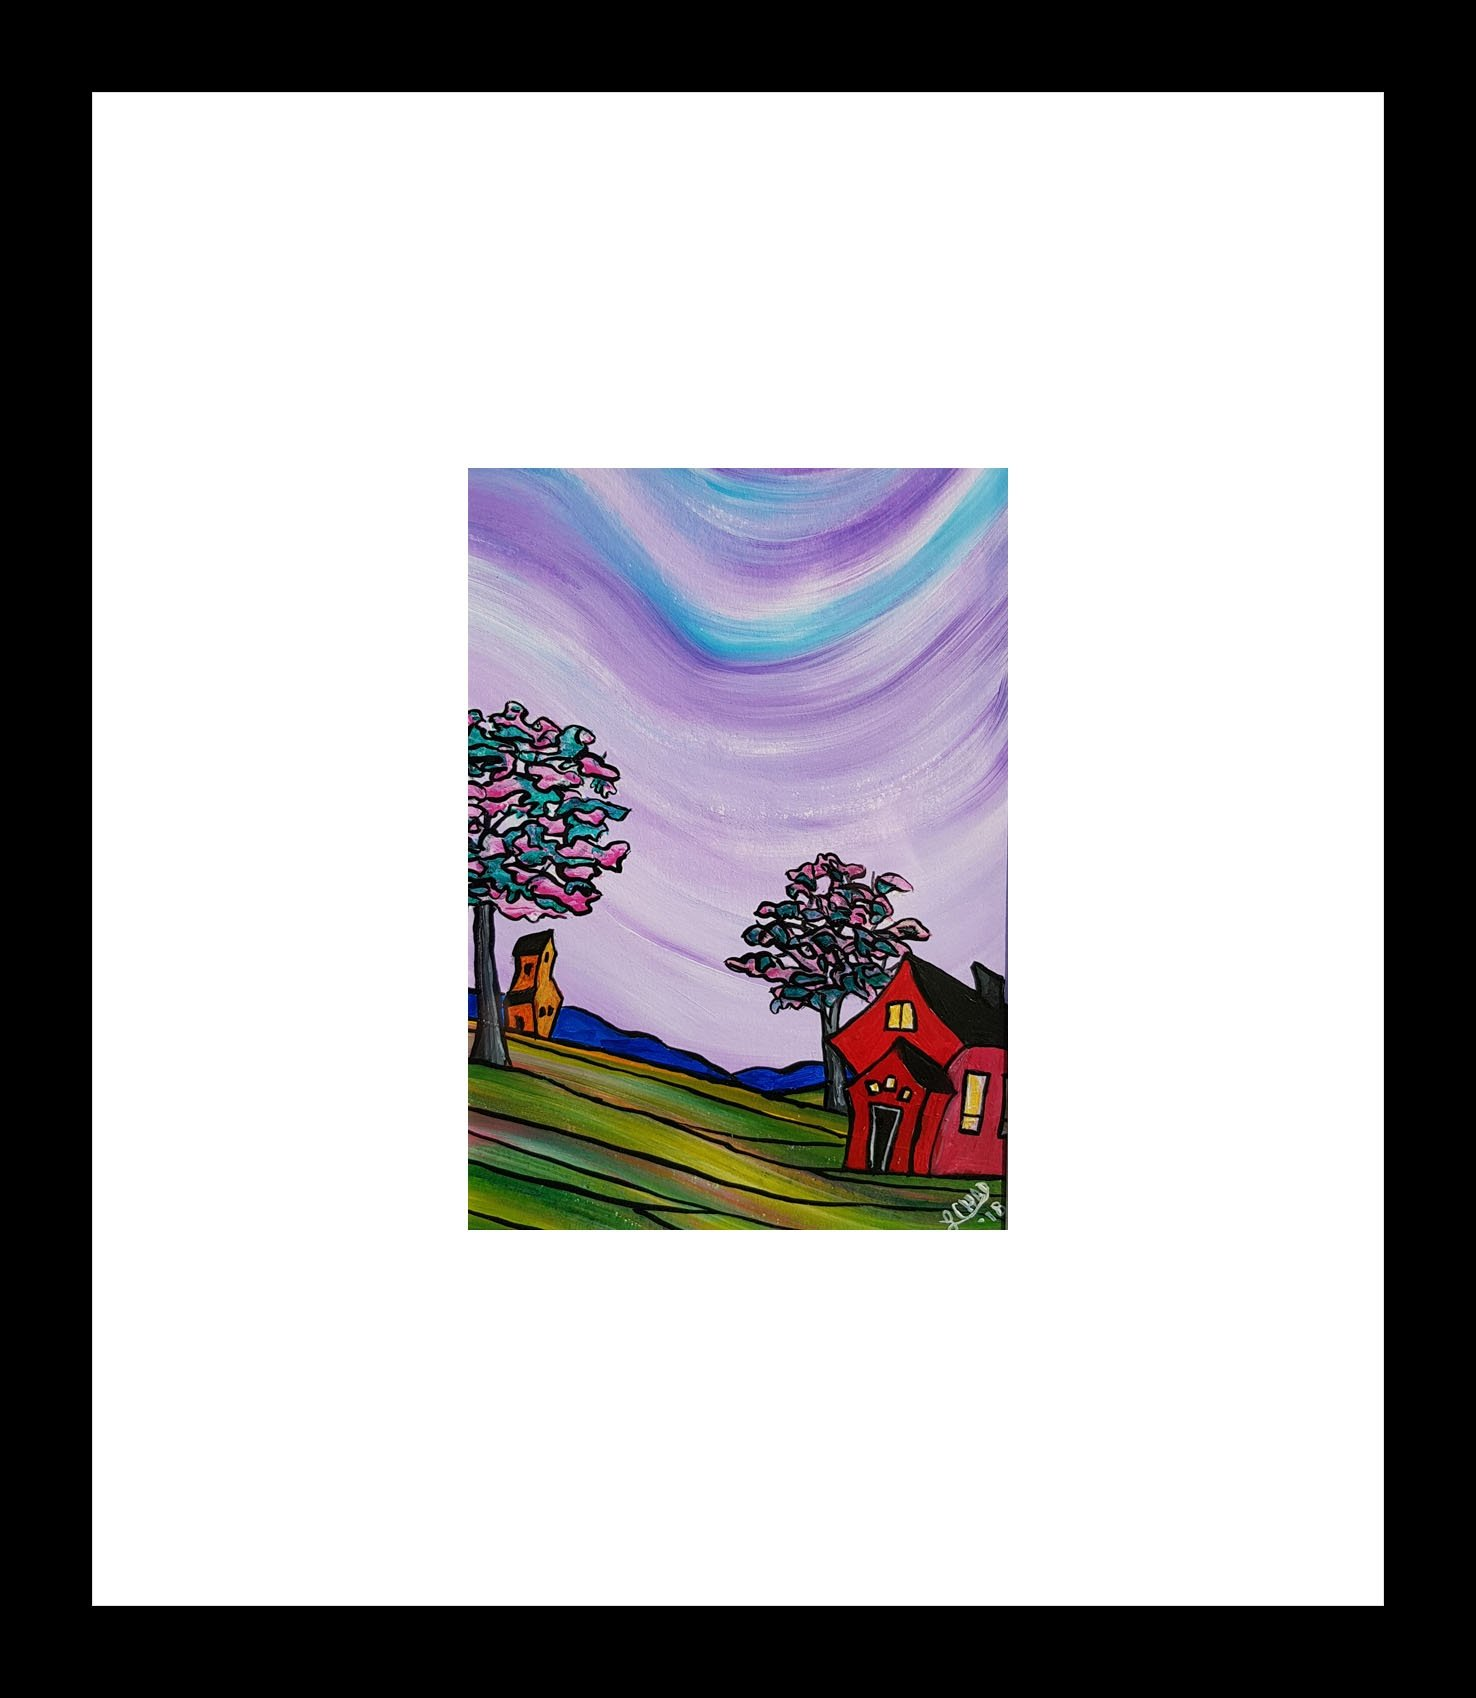 """Oh So Prairie"" [2018] Image: 7.5 x 9.5  Framed: 20"" x 20"" Acrylic on 246 lb. paper $225.00"